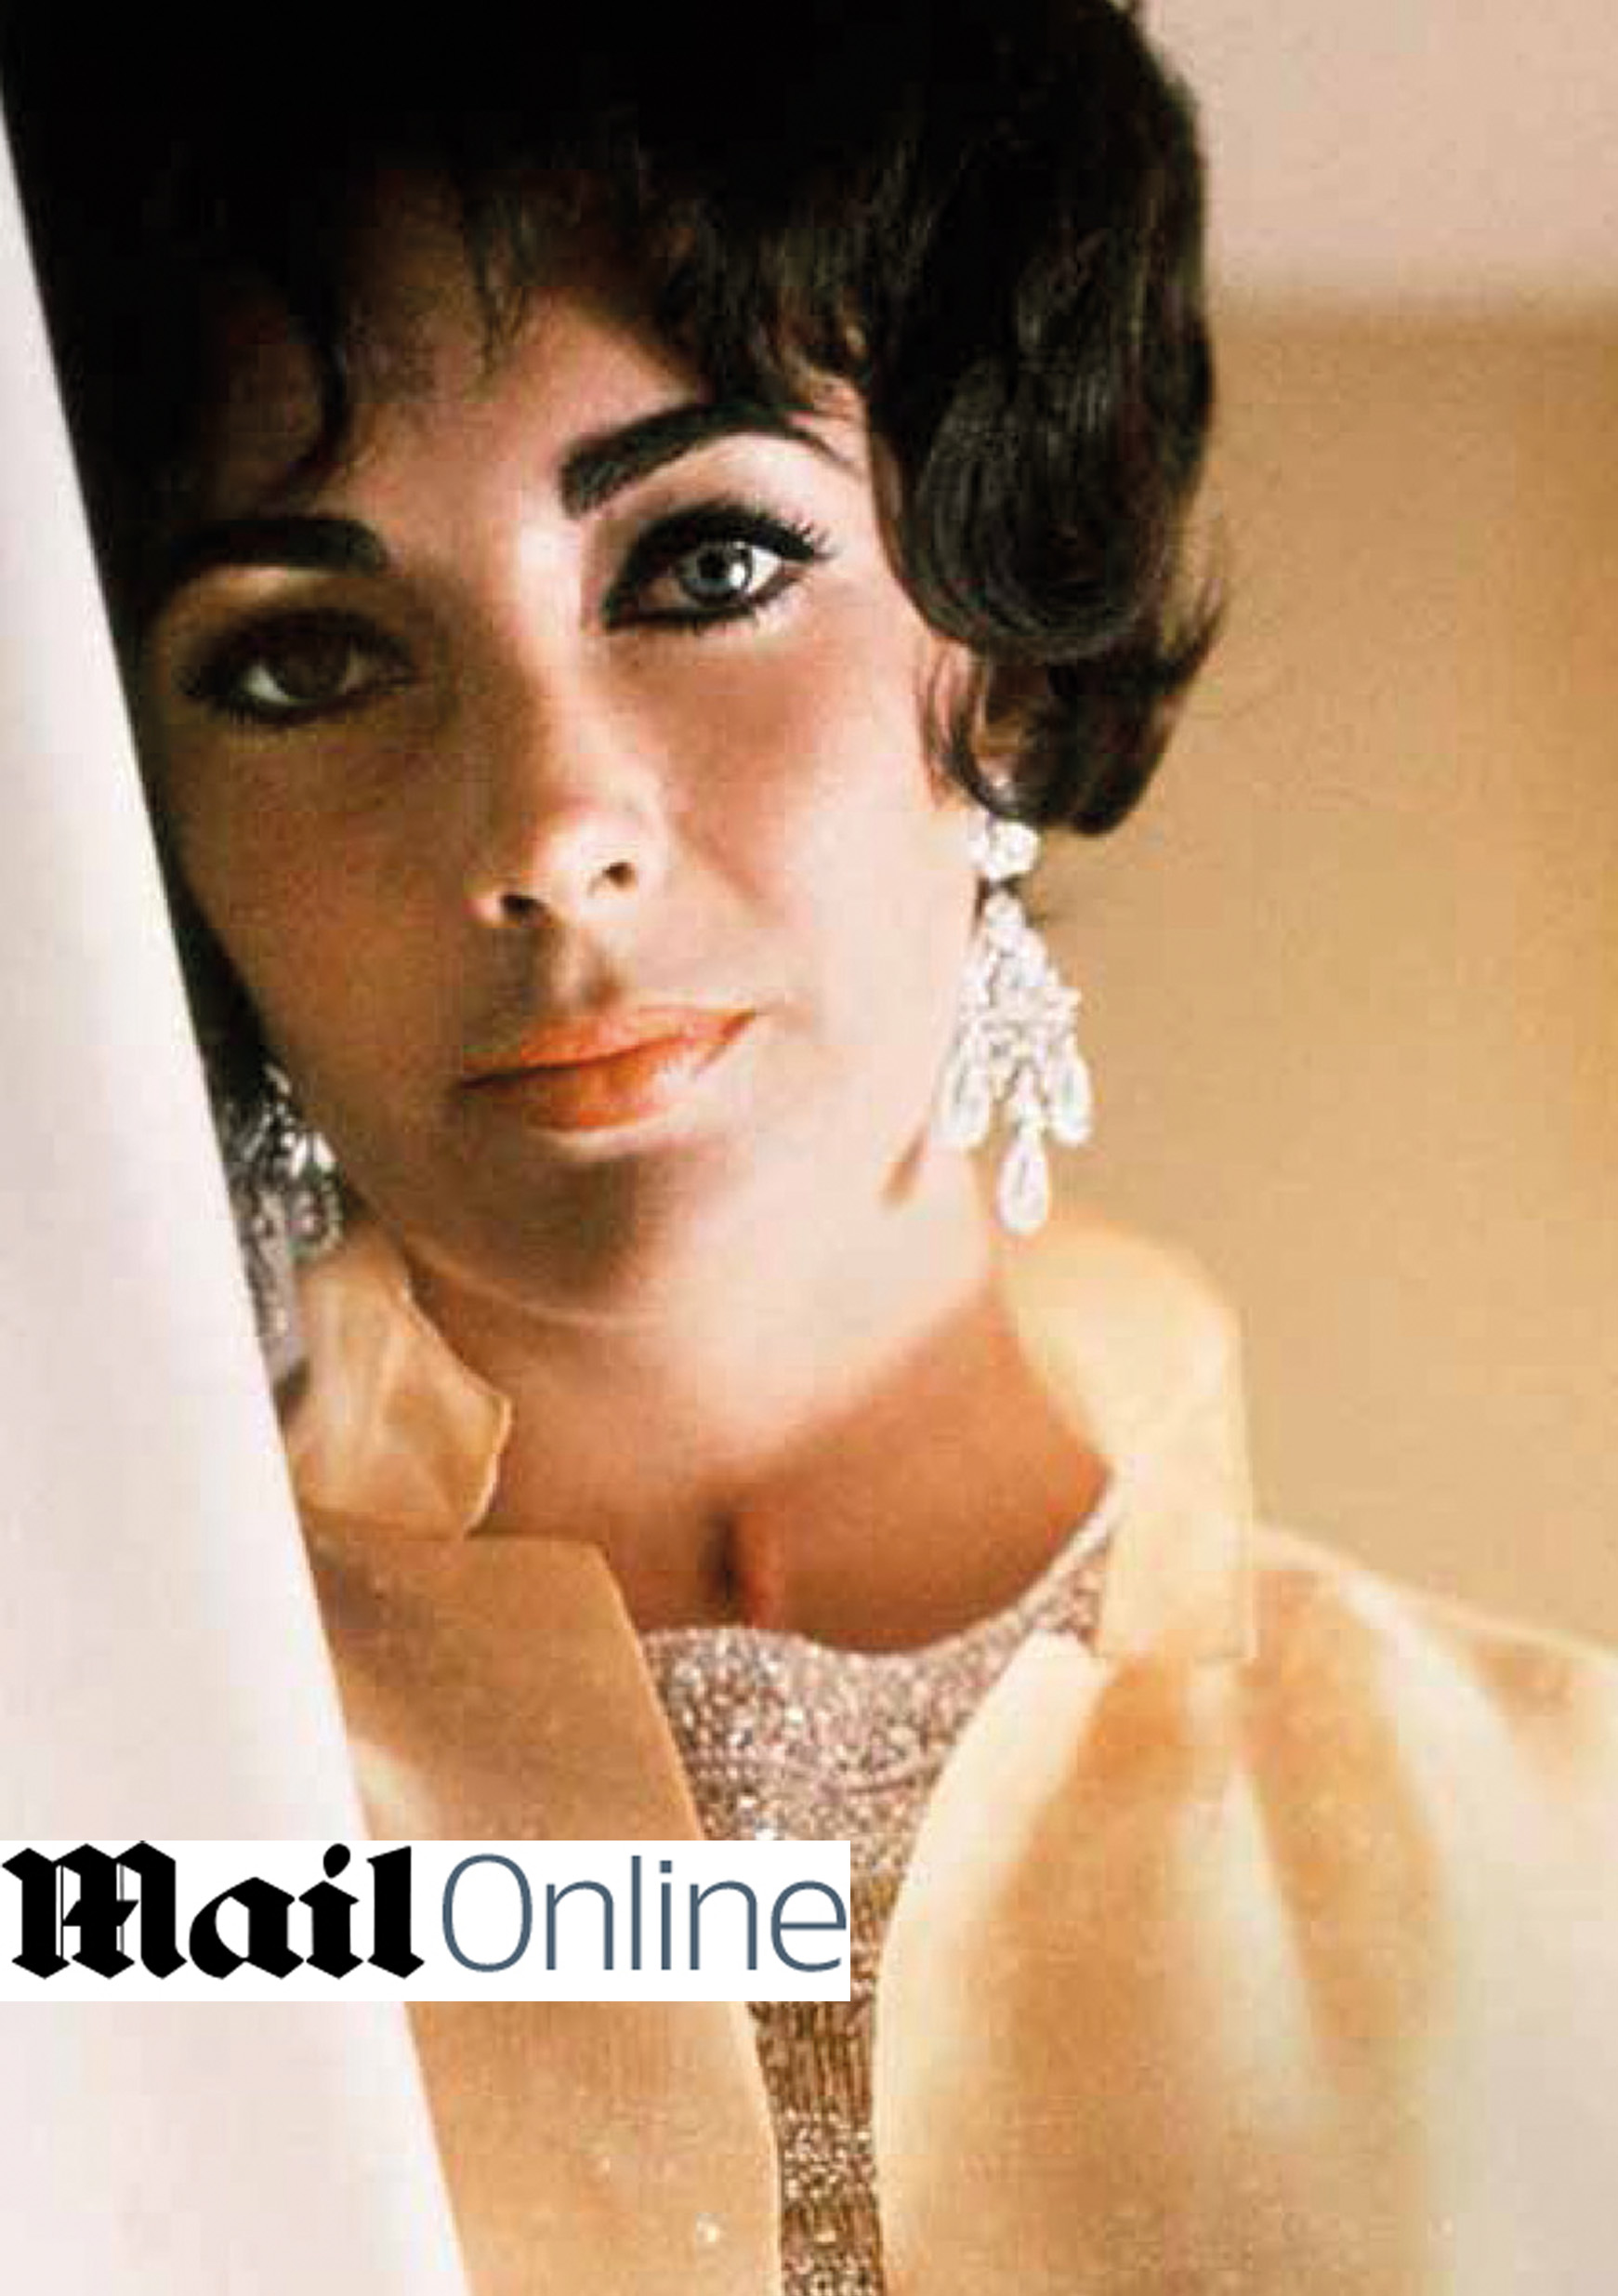 Elizabeth Taylor was the face of classic Hollywood. ACC Art Books and Iconic Images proudly present Forever Elizabeth - the work of eight wonderful photographers